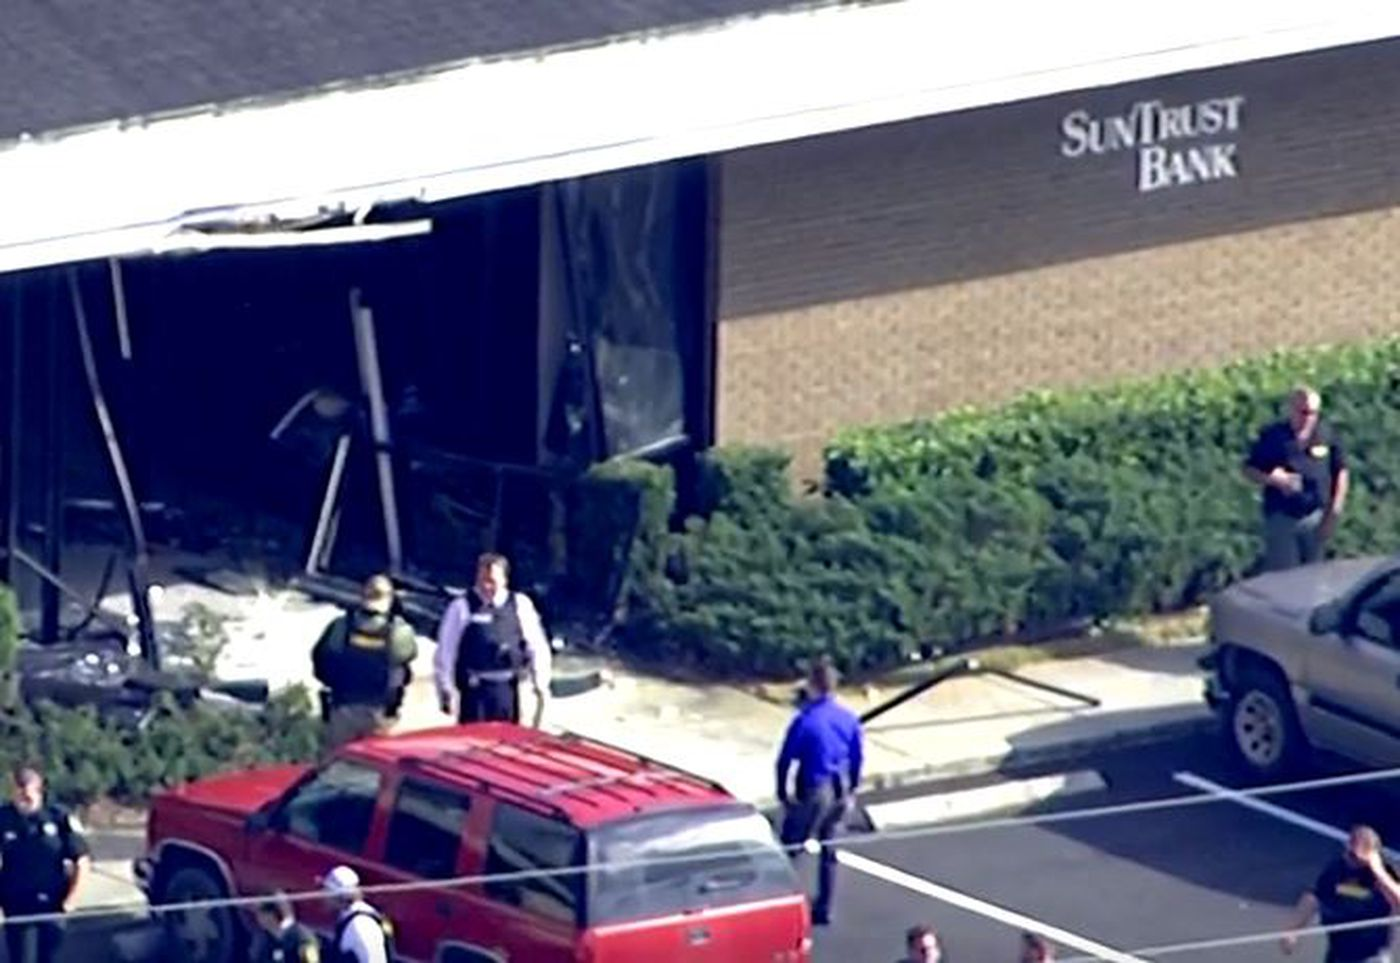 5 dead after shooting at SunTrust bank in Florida